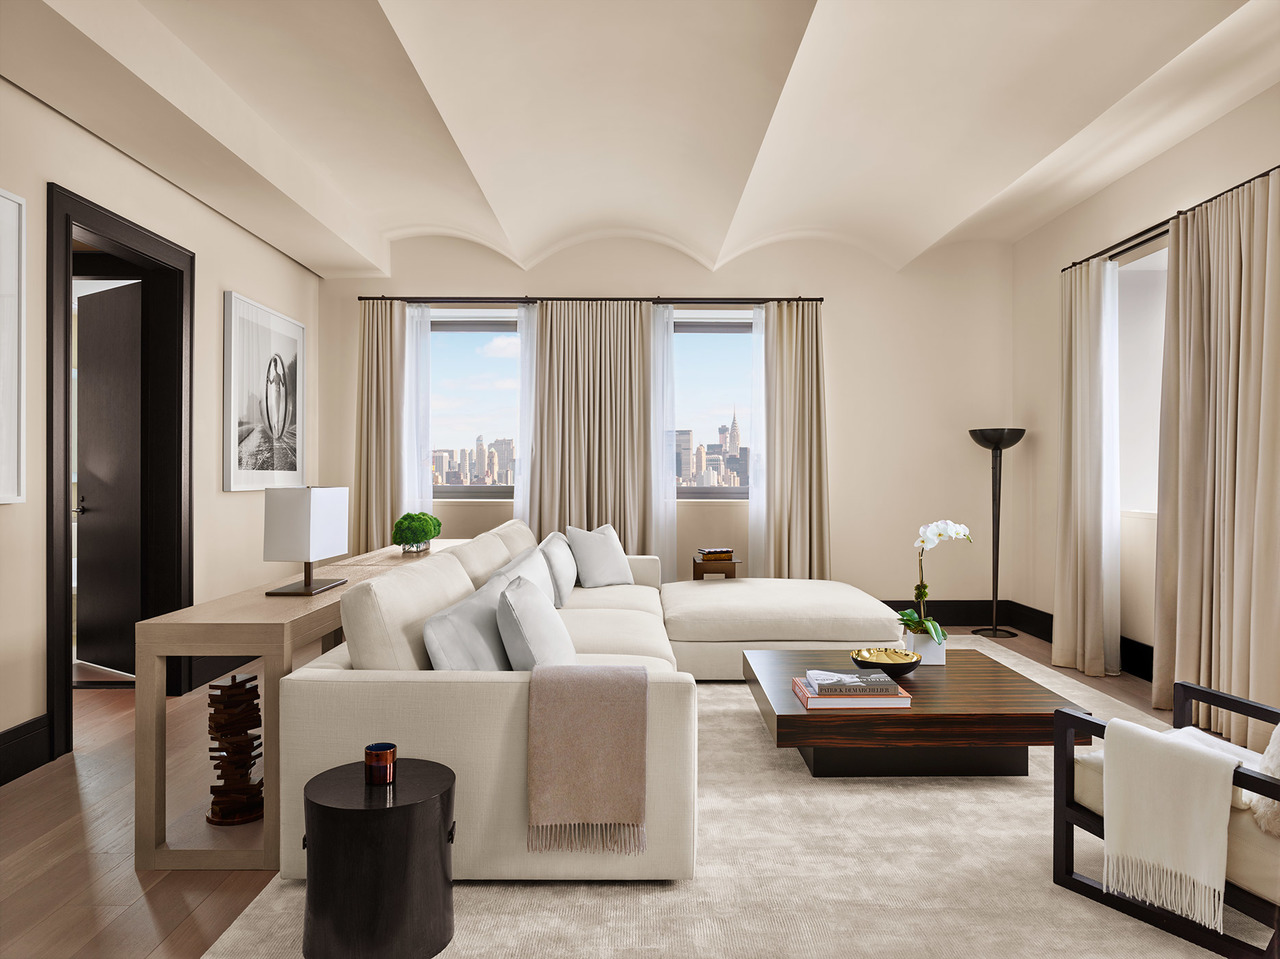 The-NYC-EDITION-Penthouse-Living-1870x1400-2.jpg